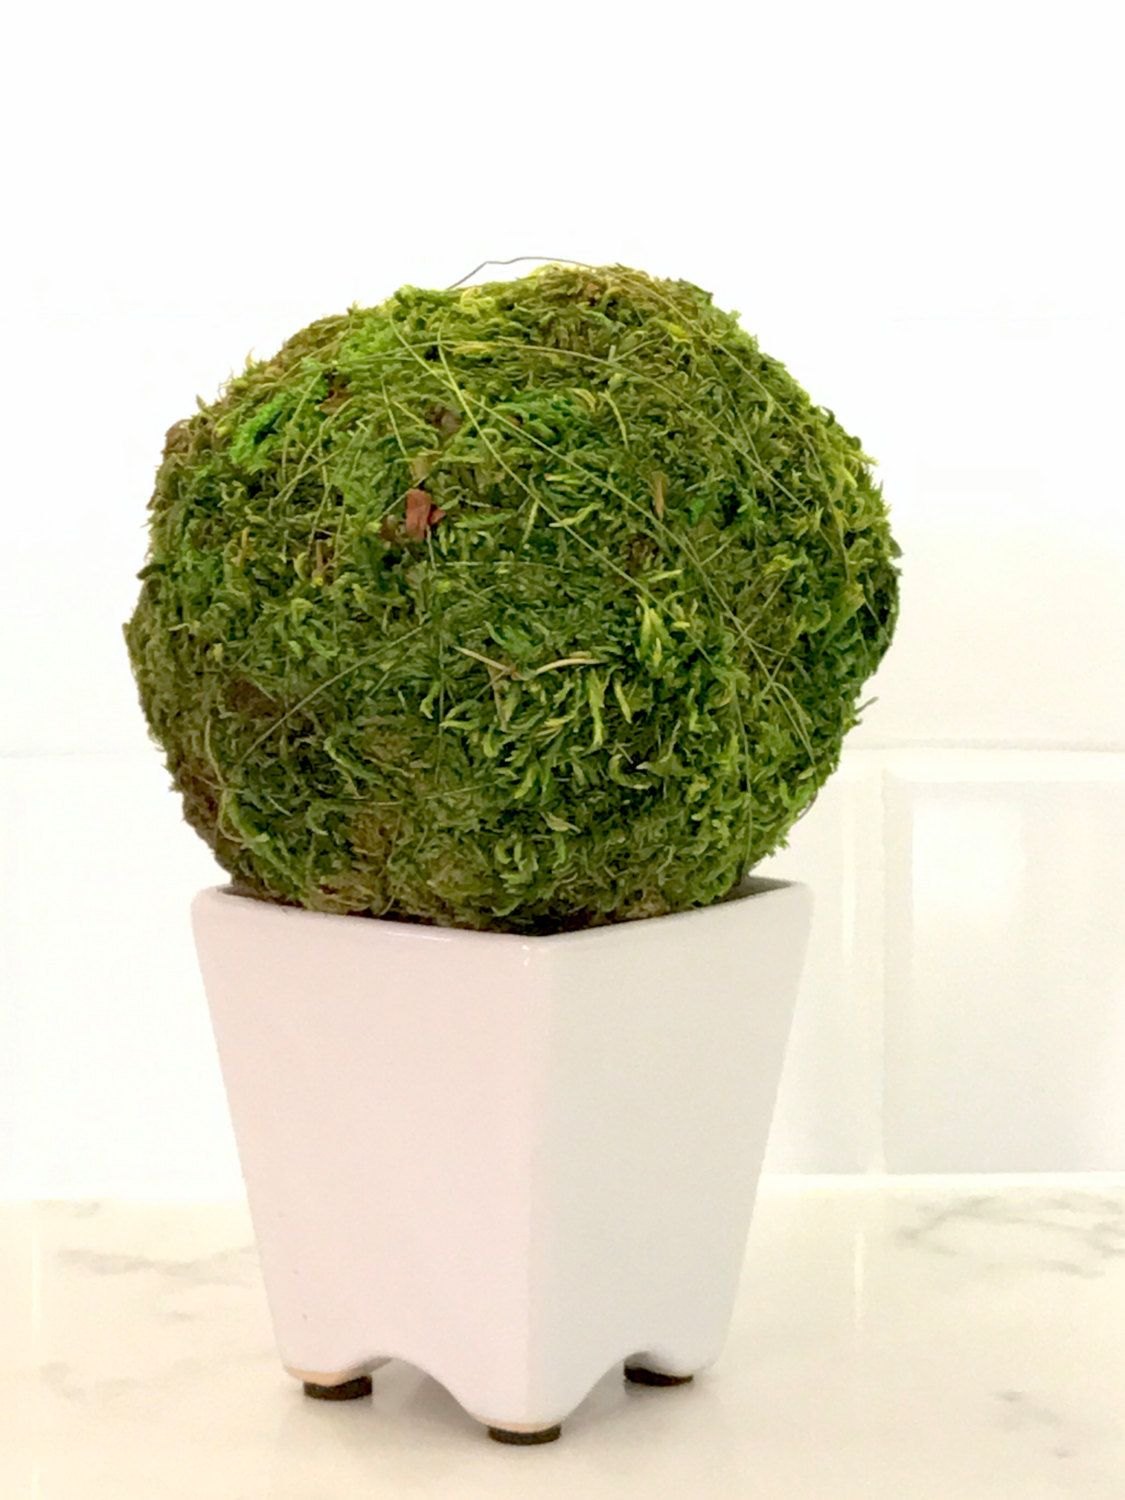 Decorative Moss Balls New Green Moss Ball Decor Moss Pomander Green Balls White Ceramic Vase 2018